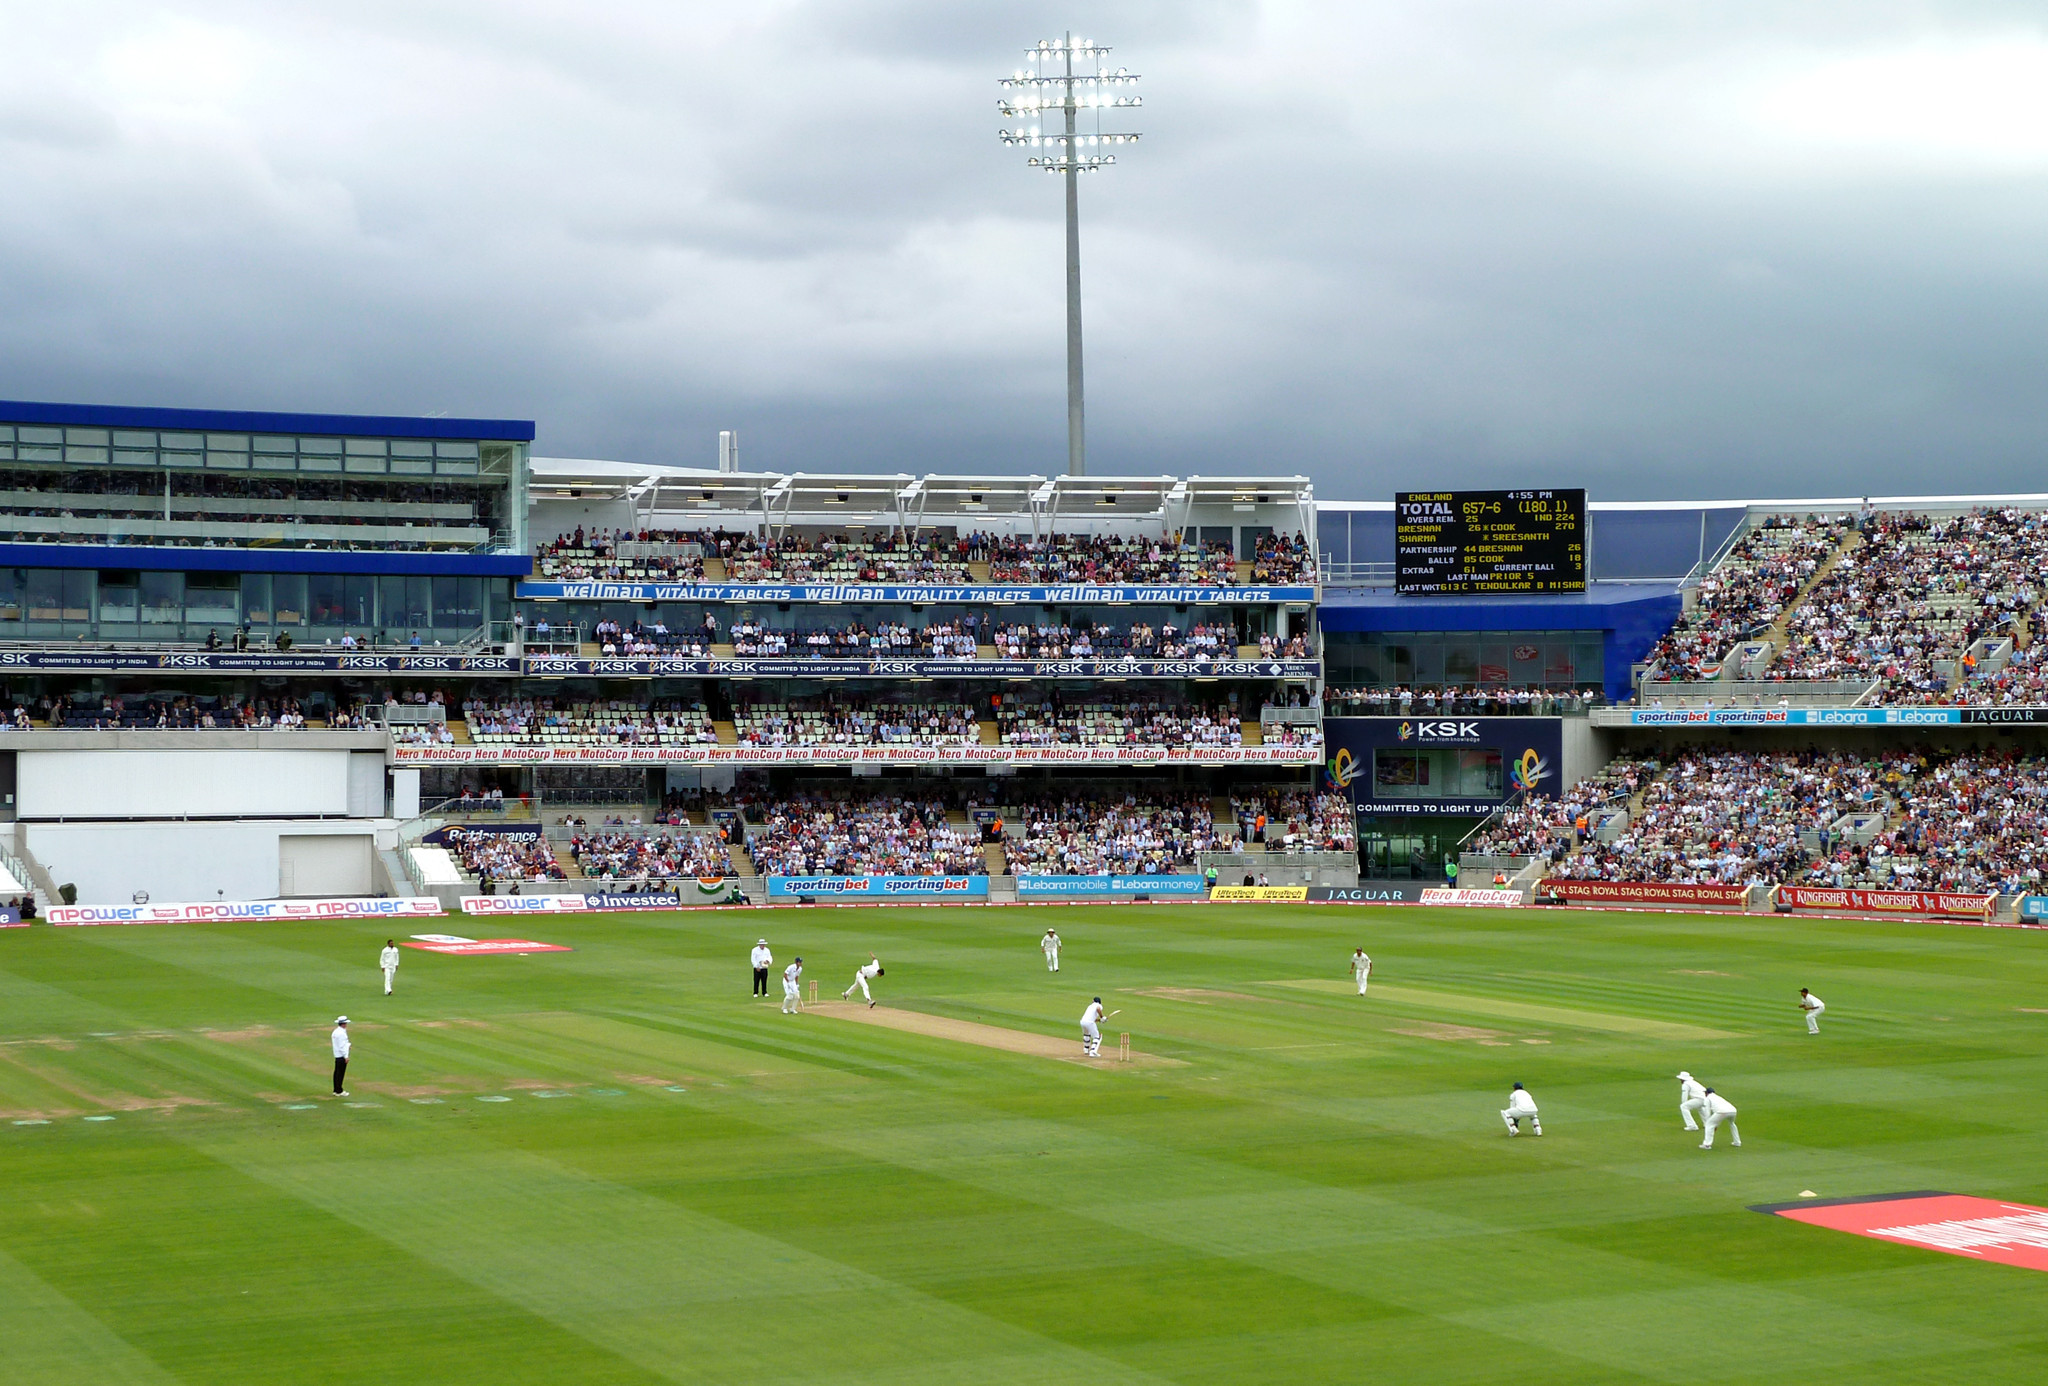 Edgbaston Stadium is to host all the matches during the women's cricket tournament at Birmingham 2022 ©Wikipedia